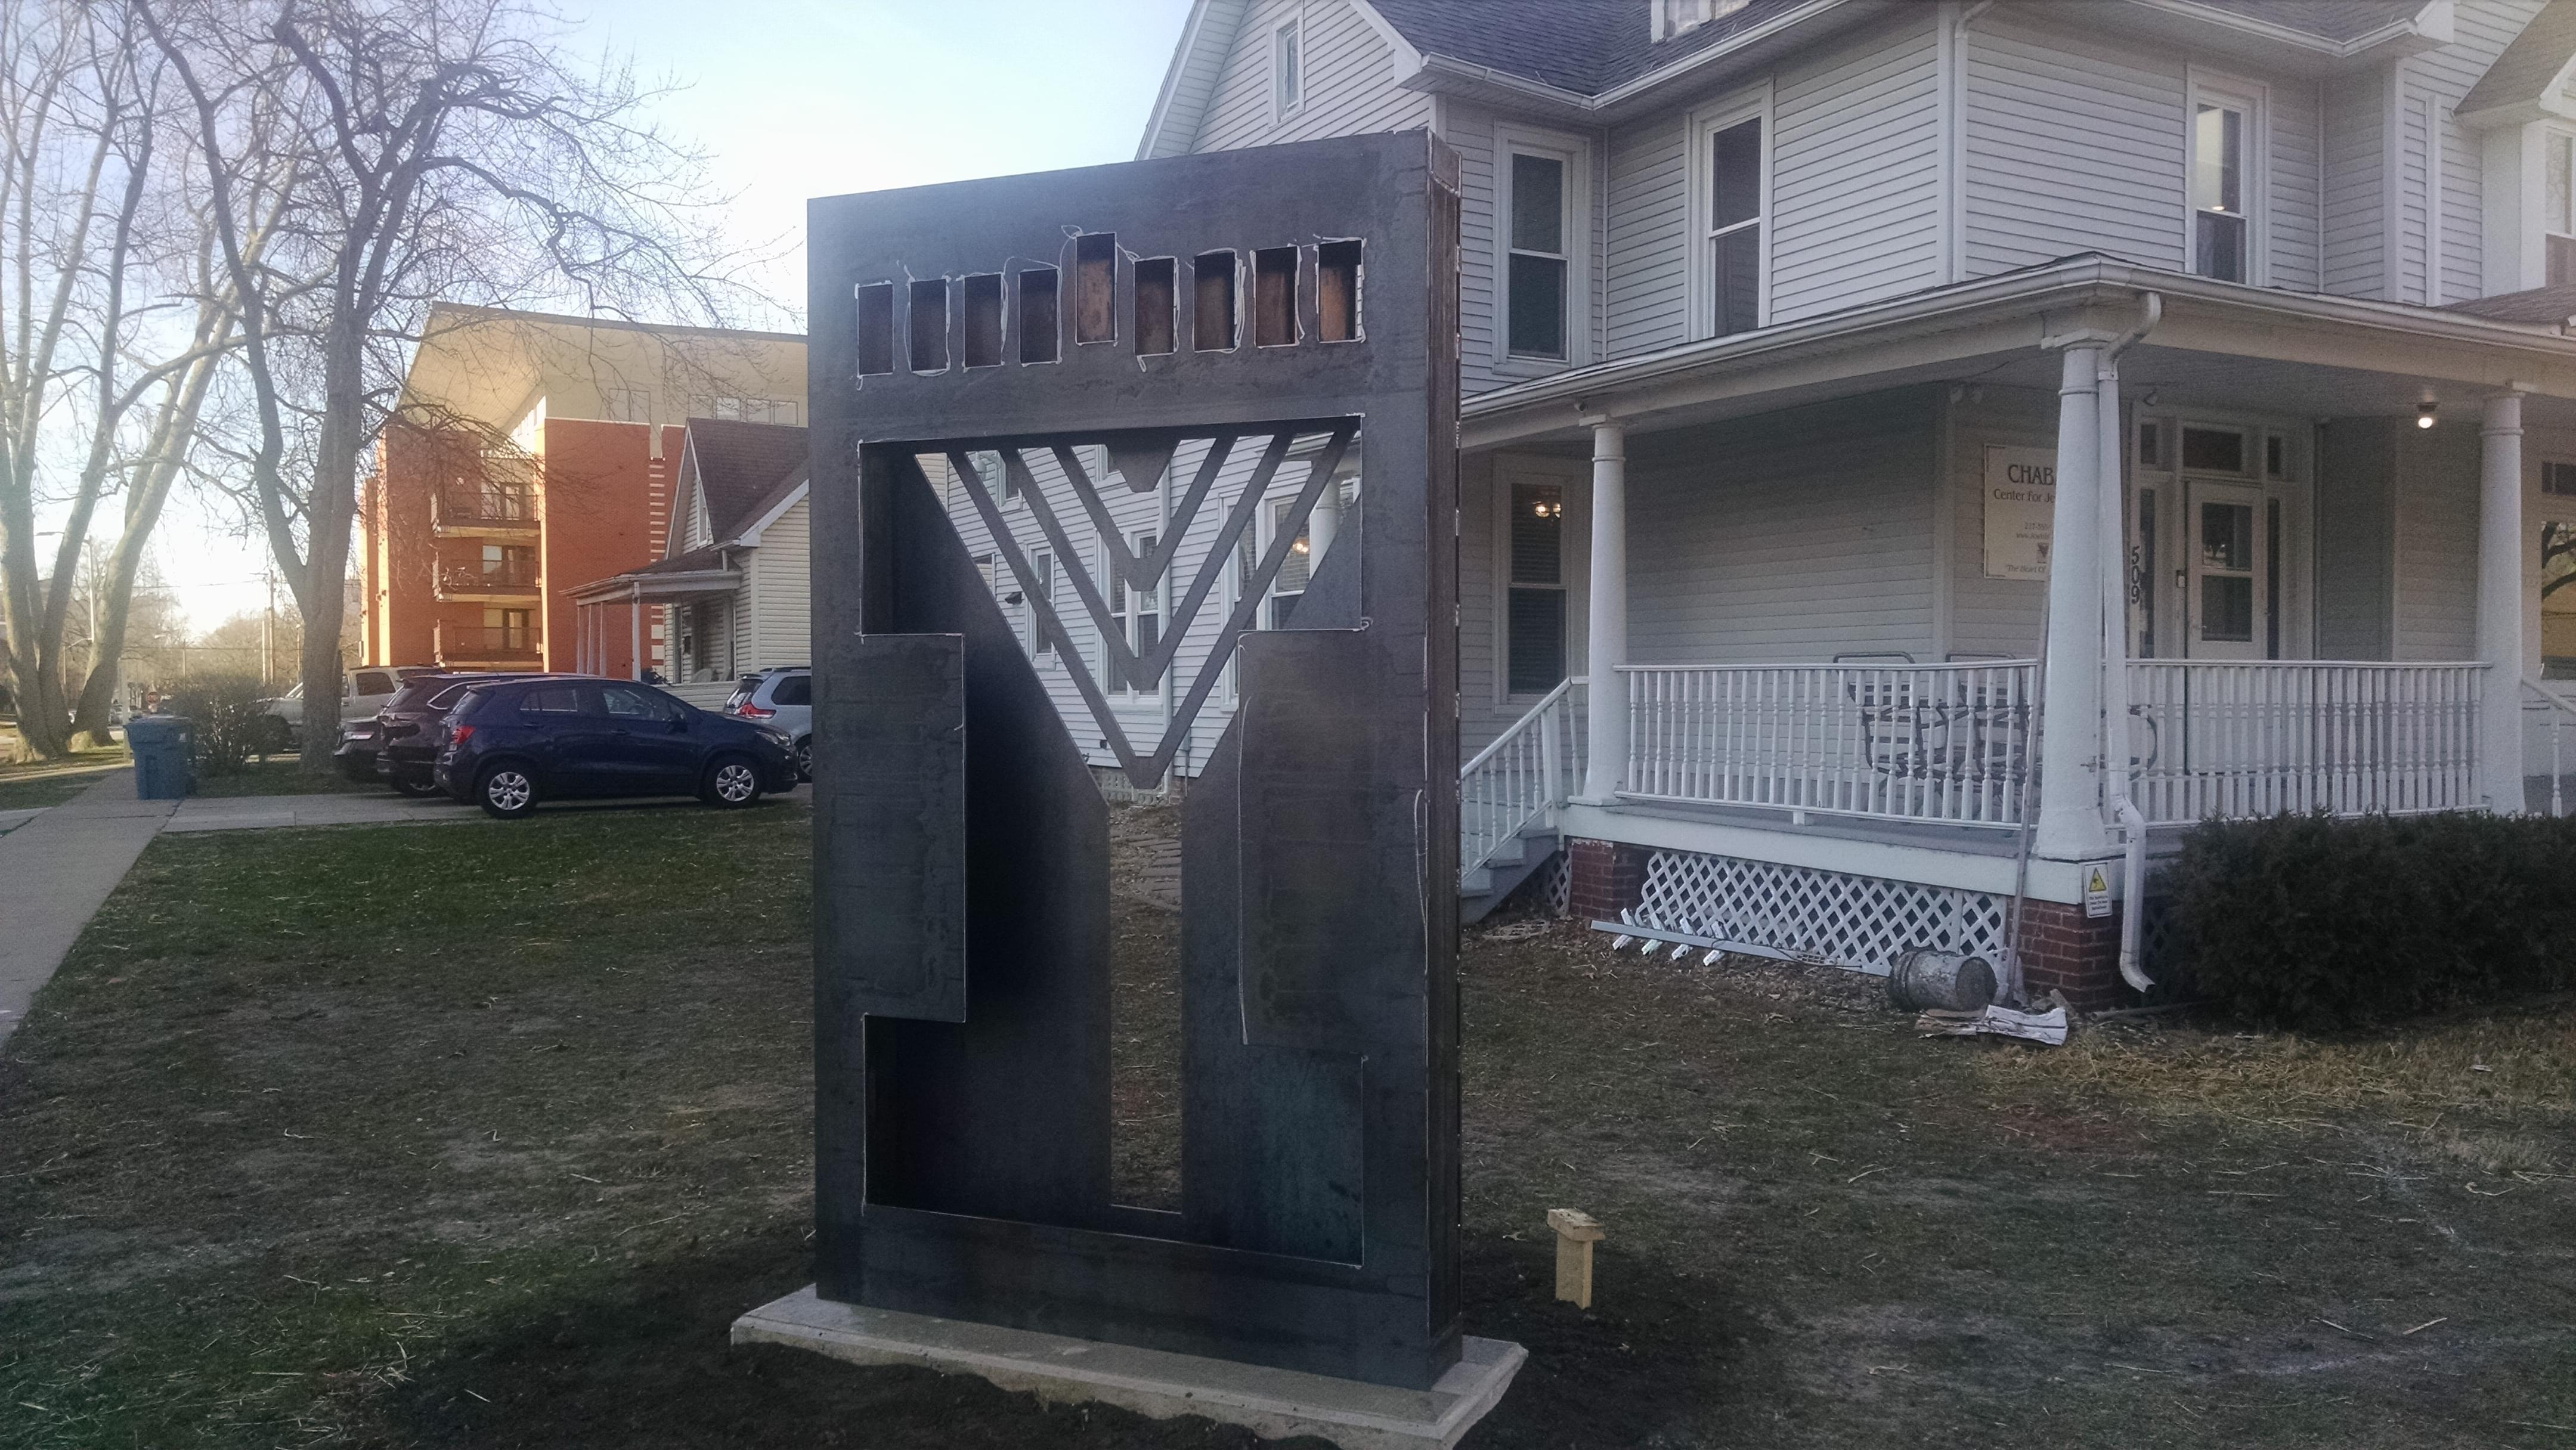 The New Illini Chabad Center for Jewish Life menorah